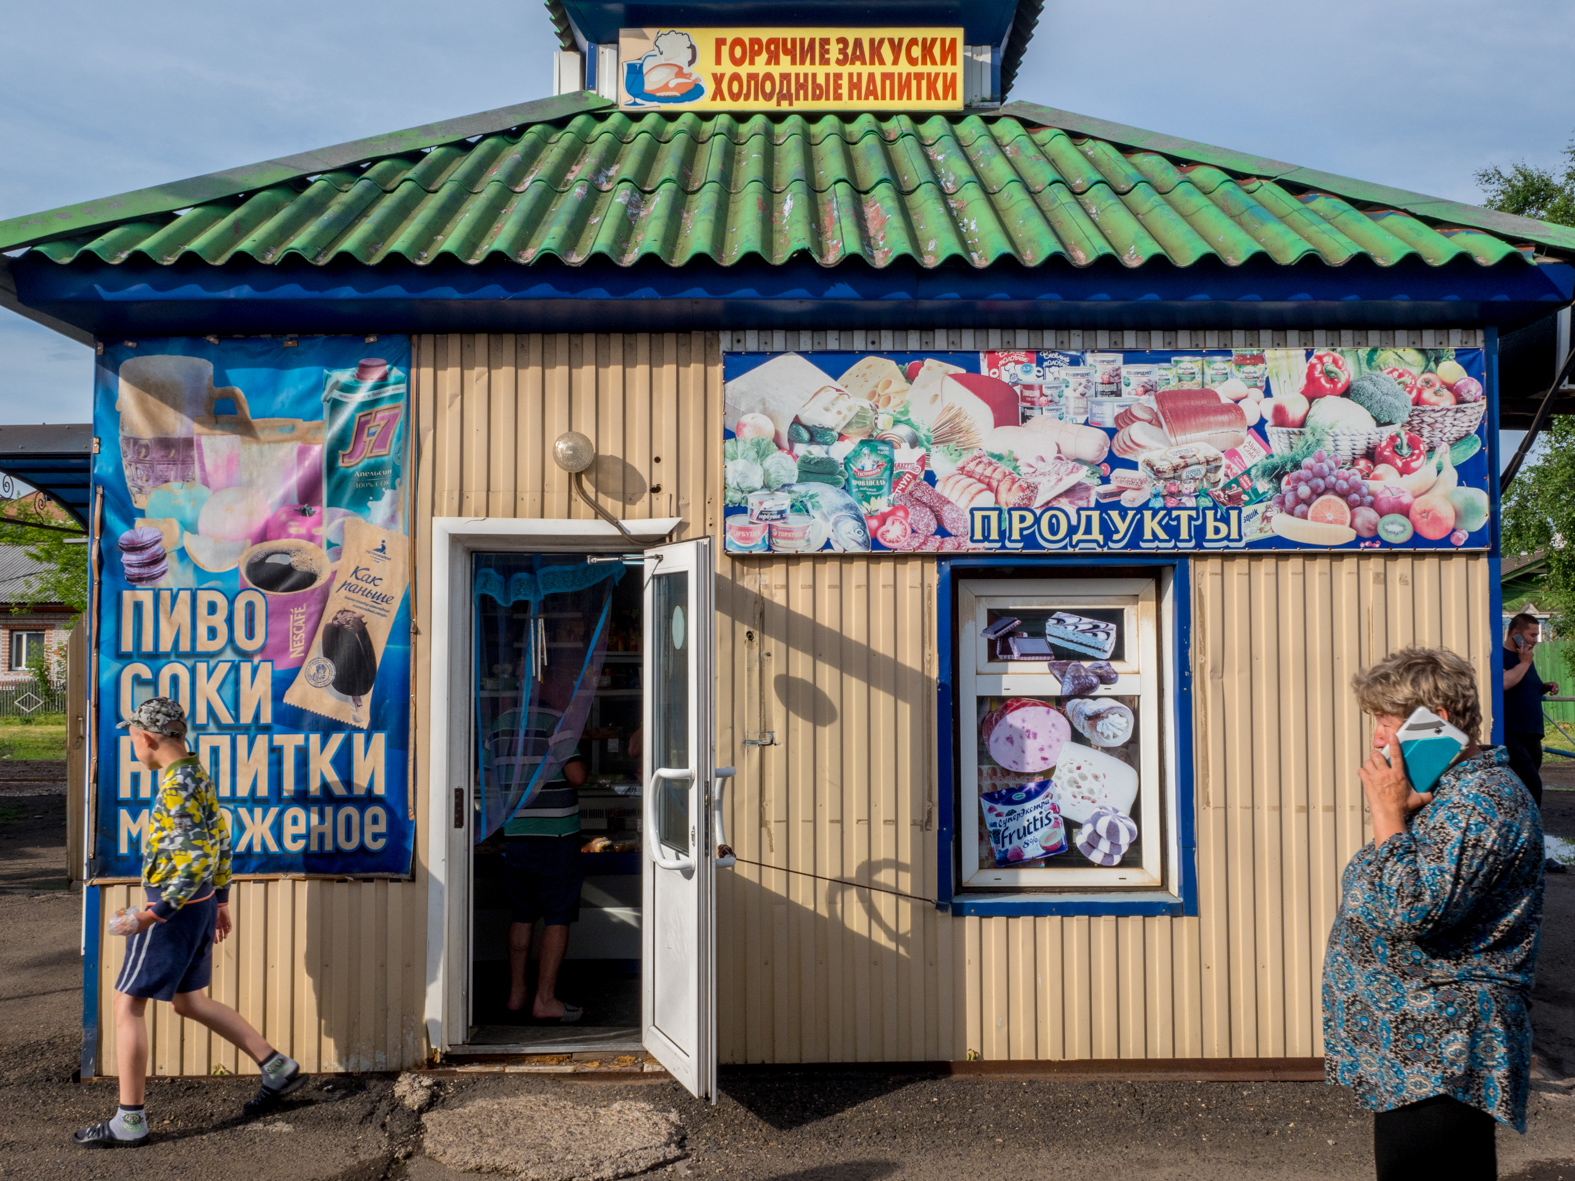 A shop provising supplies for passengers on the Trans-Siberian Railway from Moscow-Vladivostok. Spanning a length of 9,289km, it's the longest uninterrupted single country train journey in the world. It has connected Moscow with Vladivostok since 1916, and is still being expanded. It was built between 1891 and 1916 under the supervision of Russian government ministers personally appointed by Tsar Alexander III and his son, the Tsarevich Nicholas (later Tsar Nicholas II).